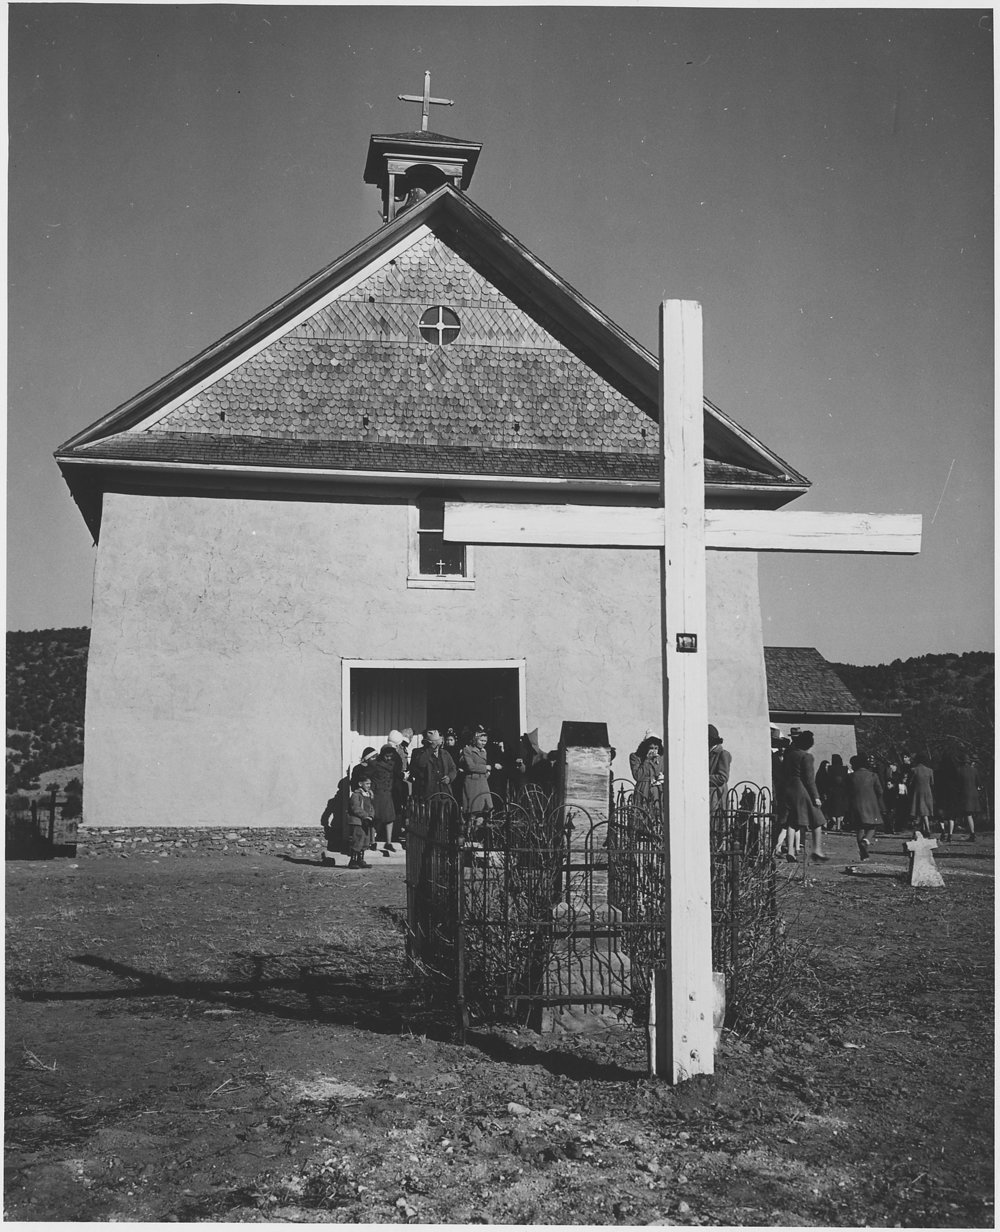 Arroyo_seco_church.jpg